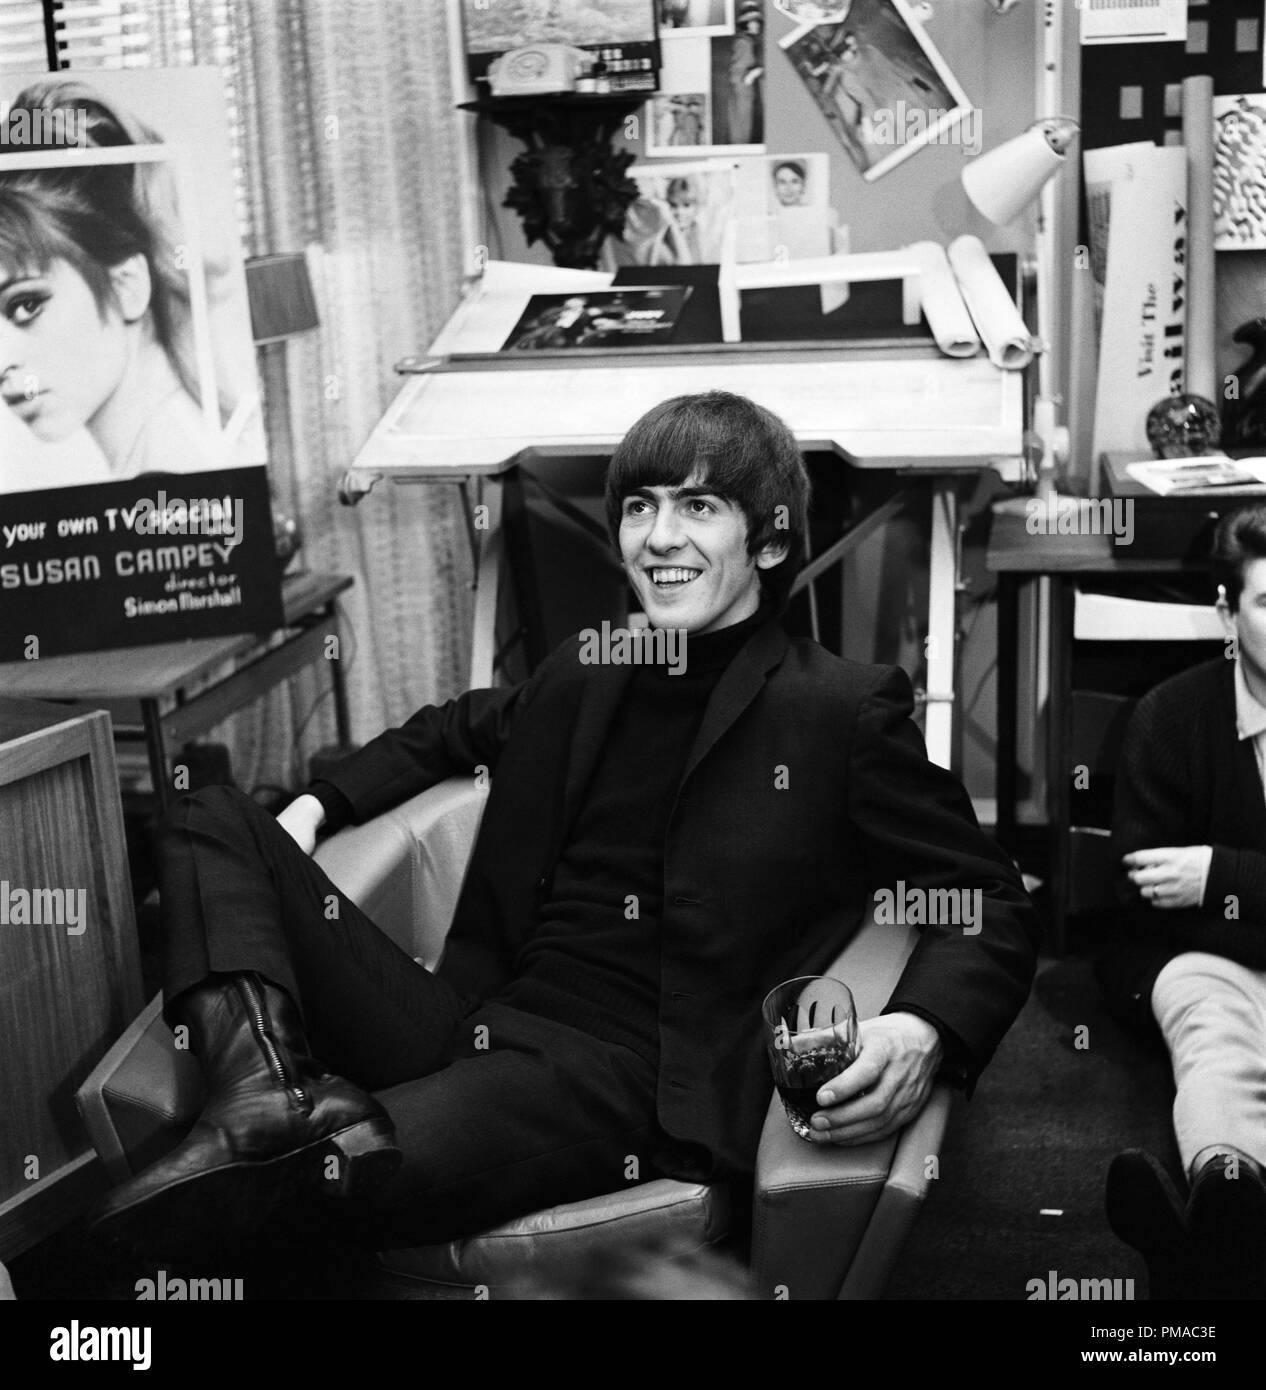 George Harrison stars in Richard Lester's A HARD DAY'S NIGHT, a Janus Films release.  File Reference # 32366_002THA - Stock Image